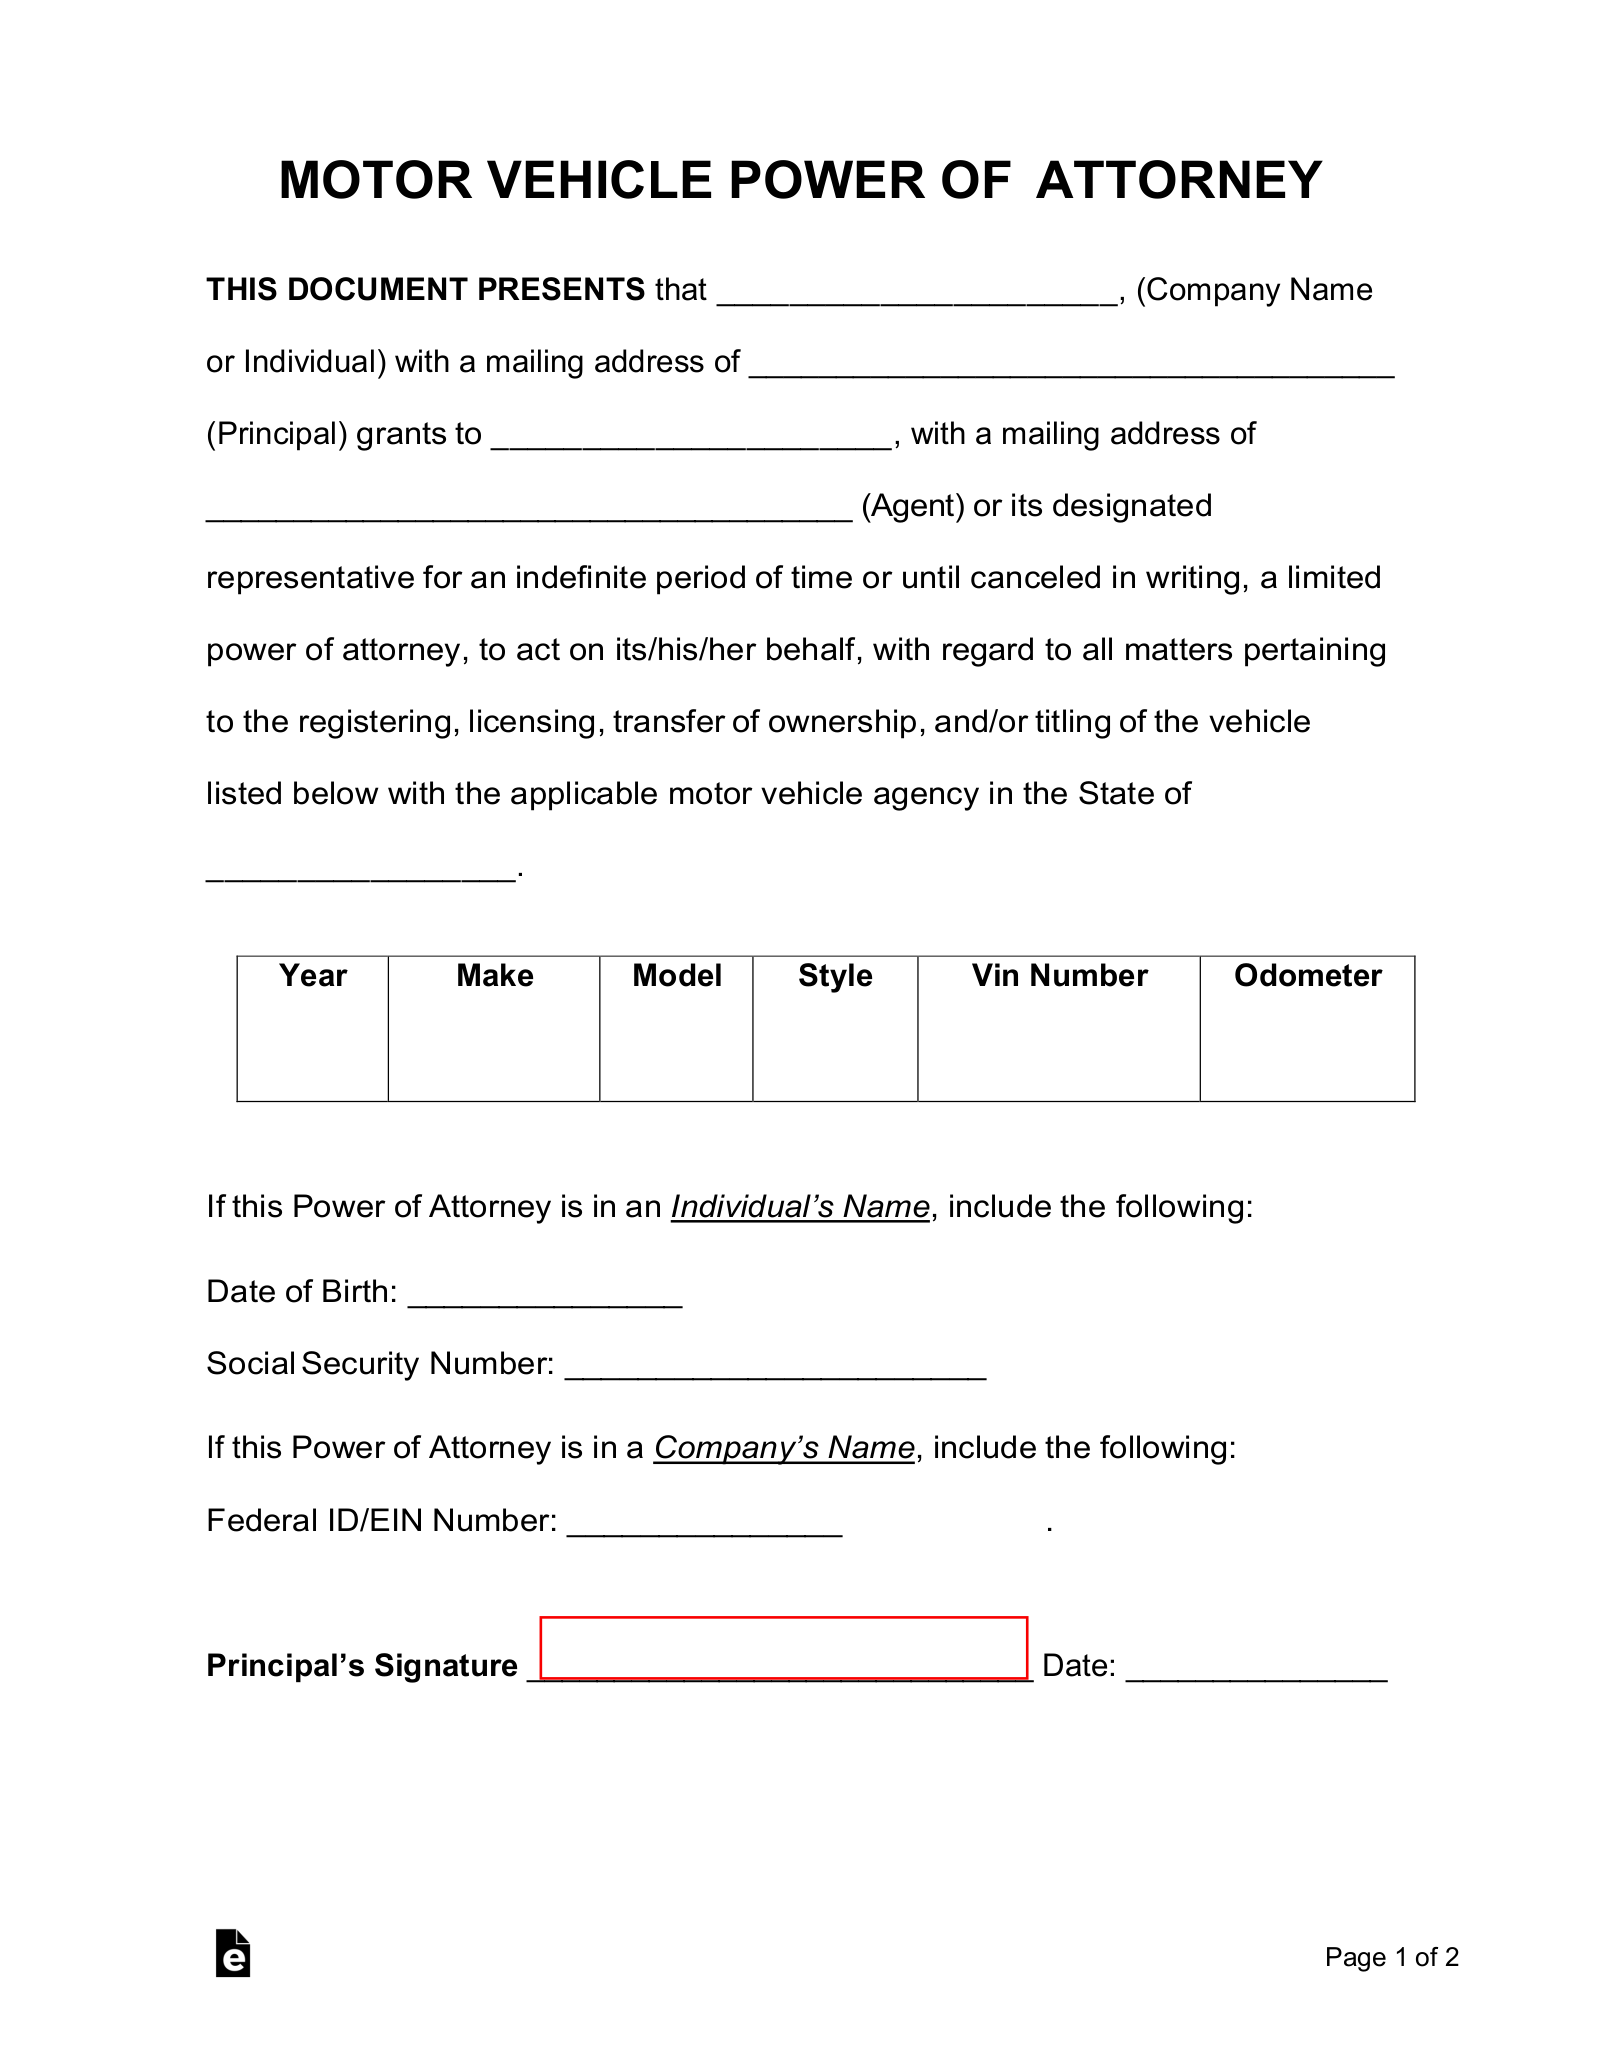 Free Motor Vehicle Power of Attorney Forms - PDF | Word ...